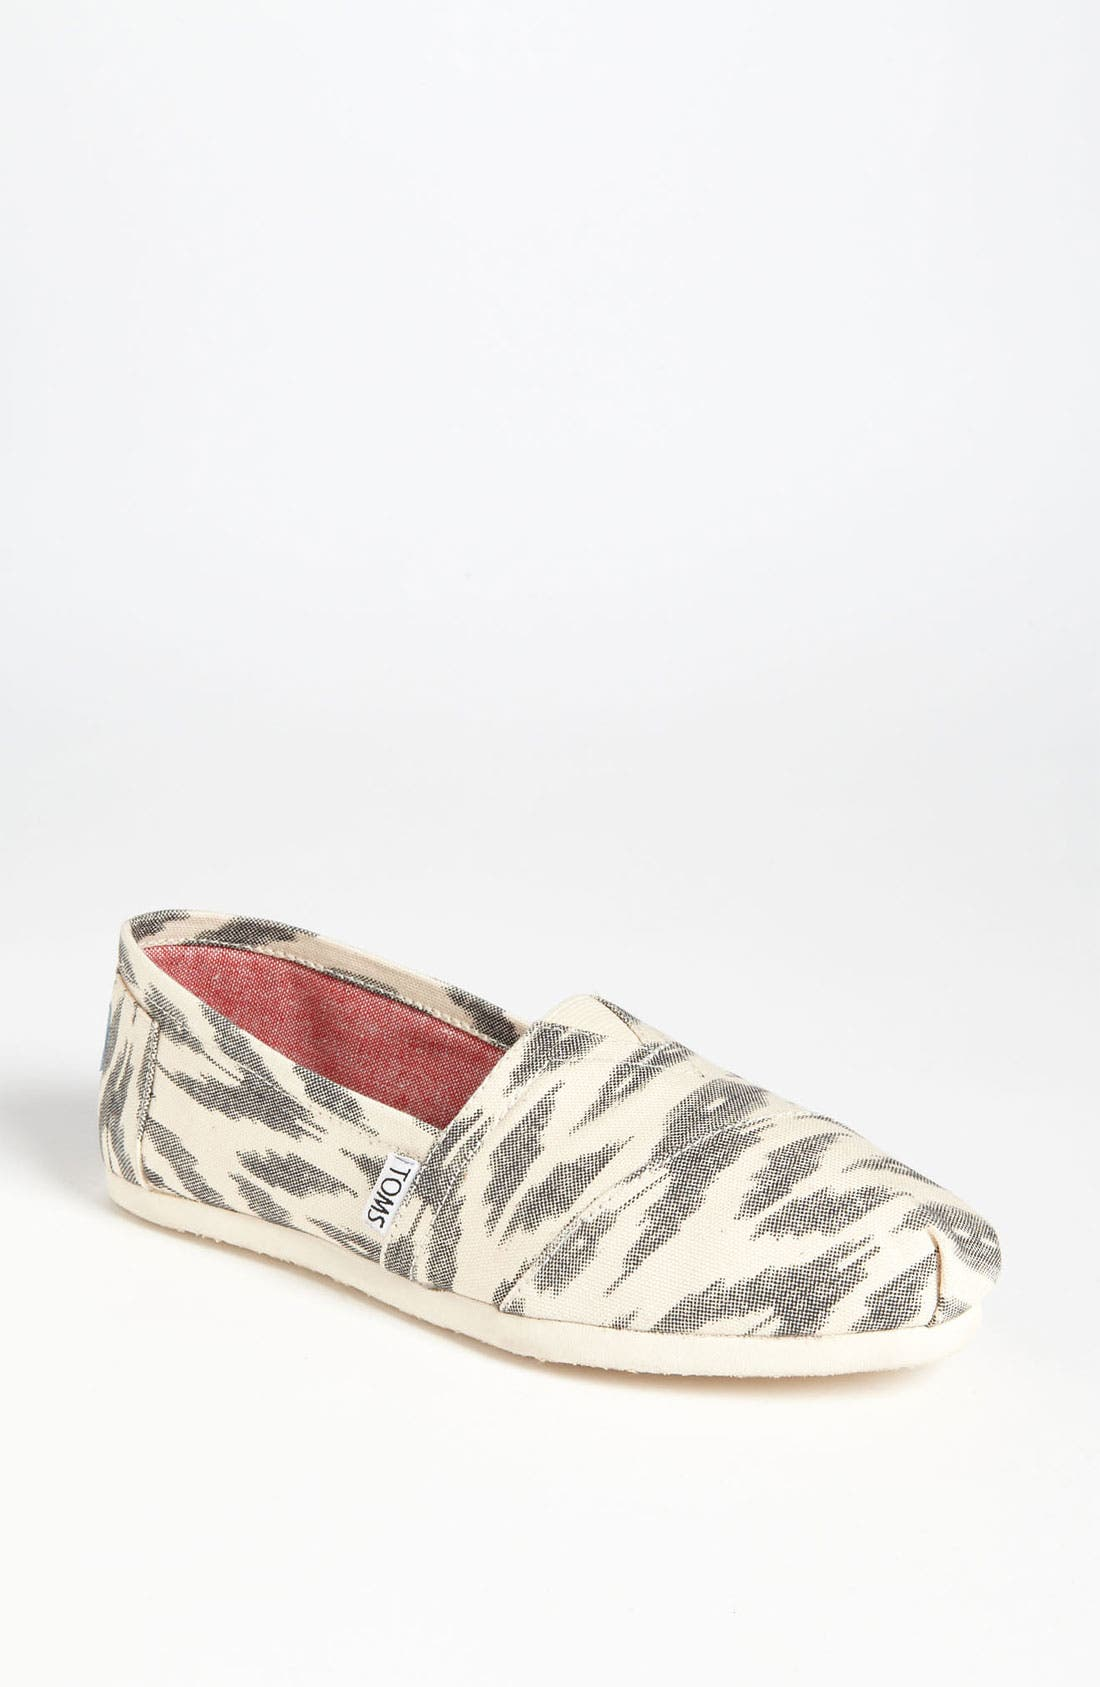 Alternate Image 1 Selected - TOMS 'Classic - Ikat' Slip-On (Women)